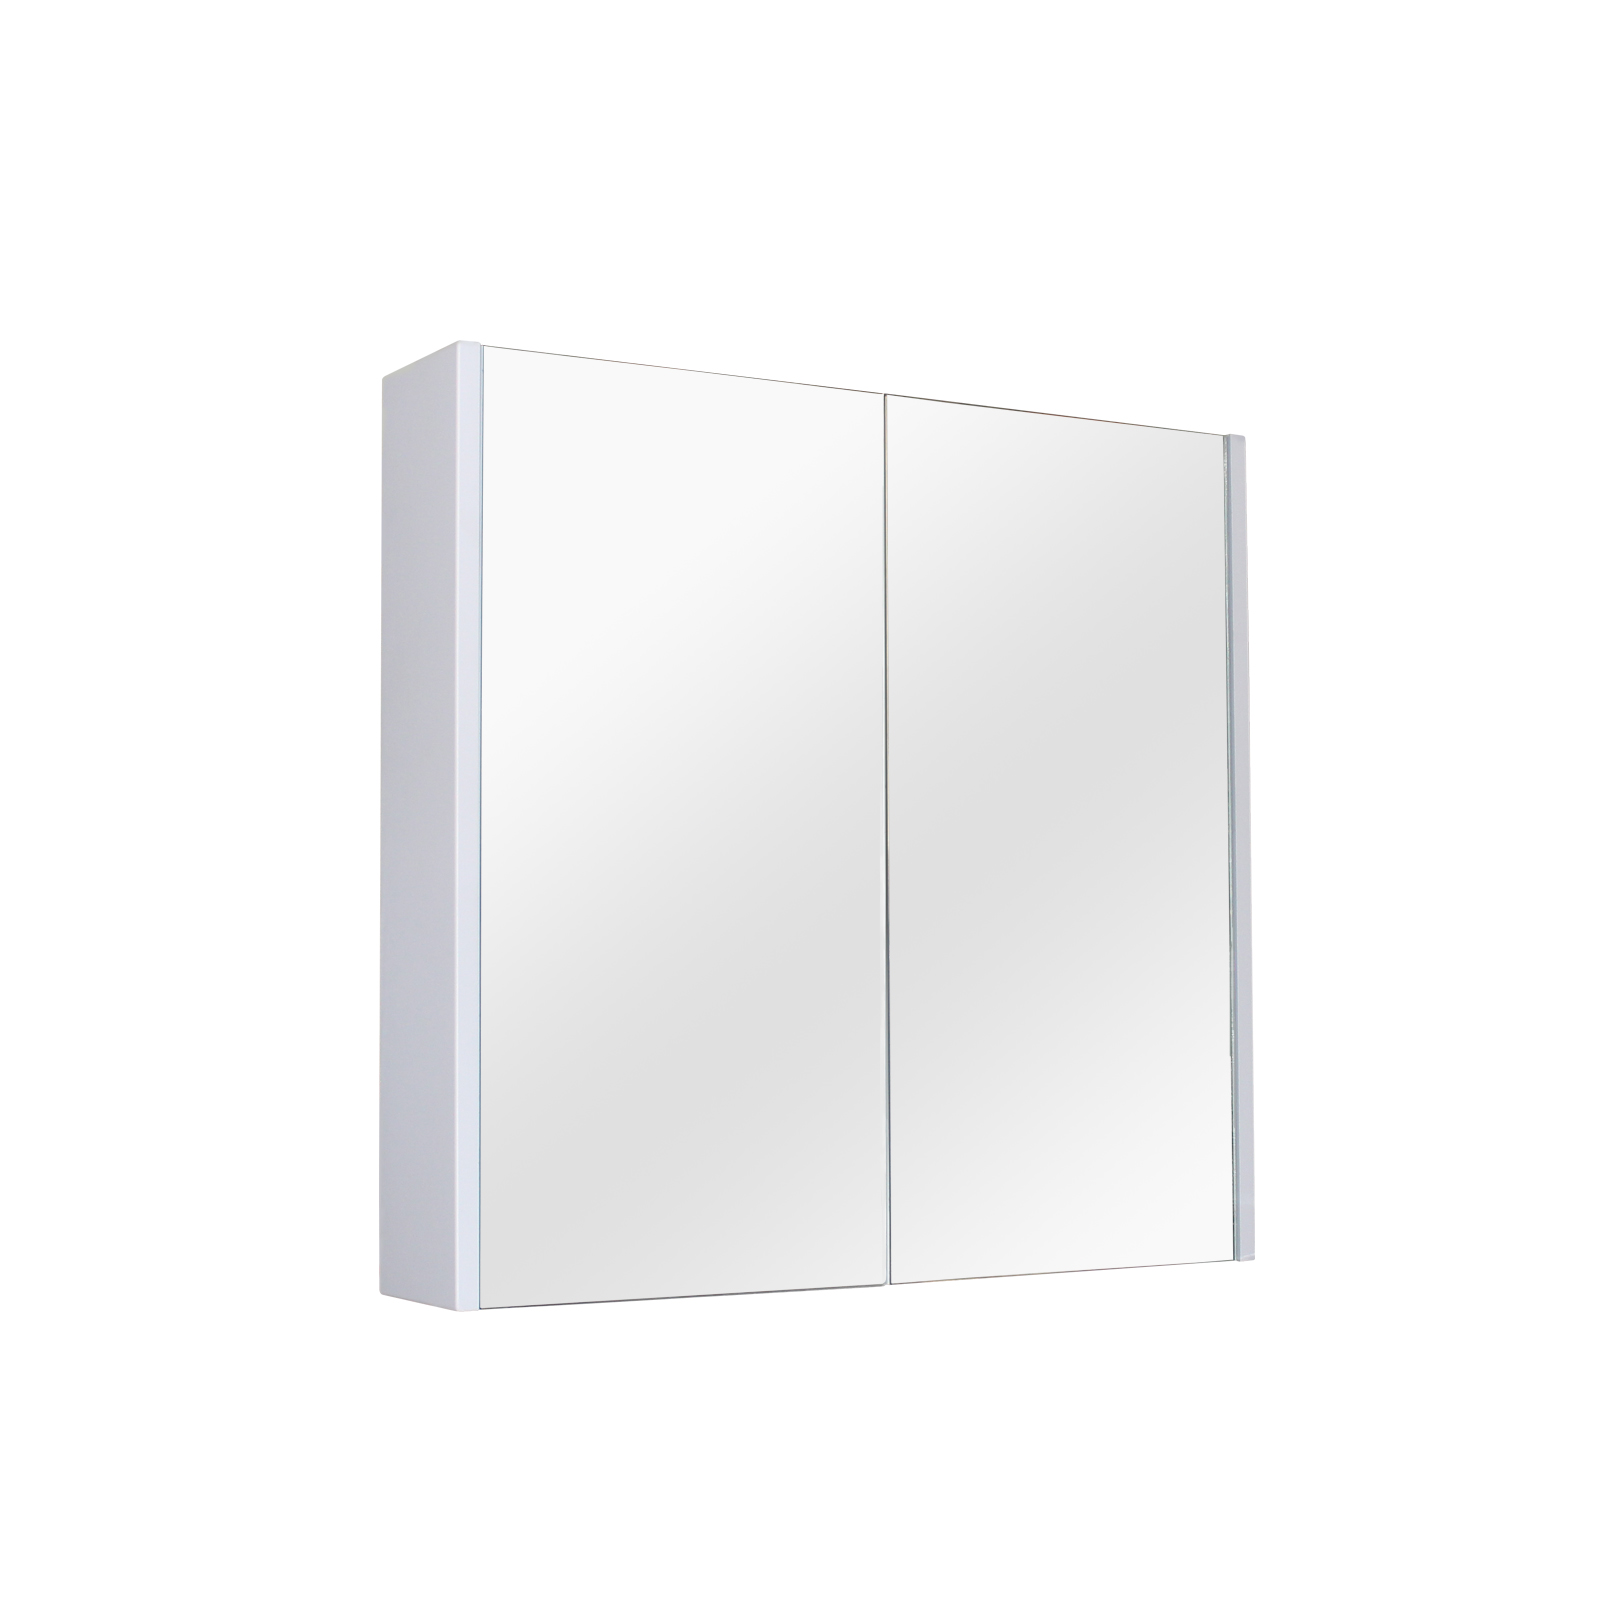 Paris 900 Shaving Cabinet - Matte White